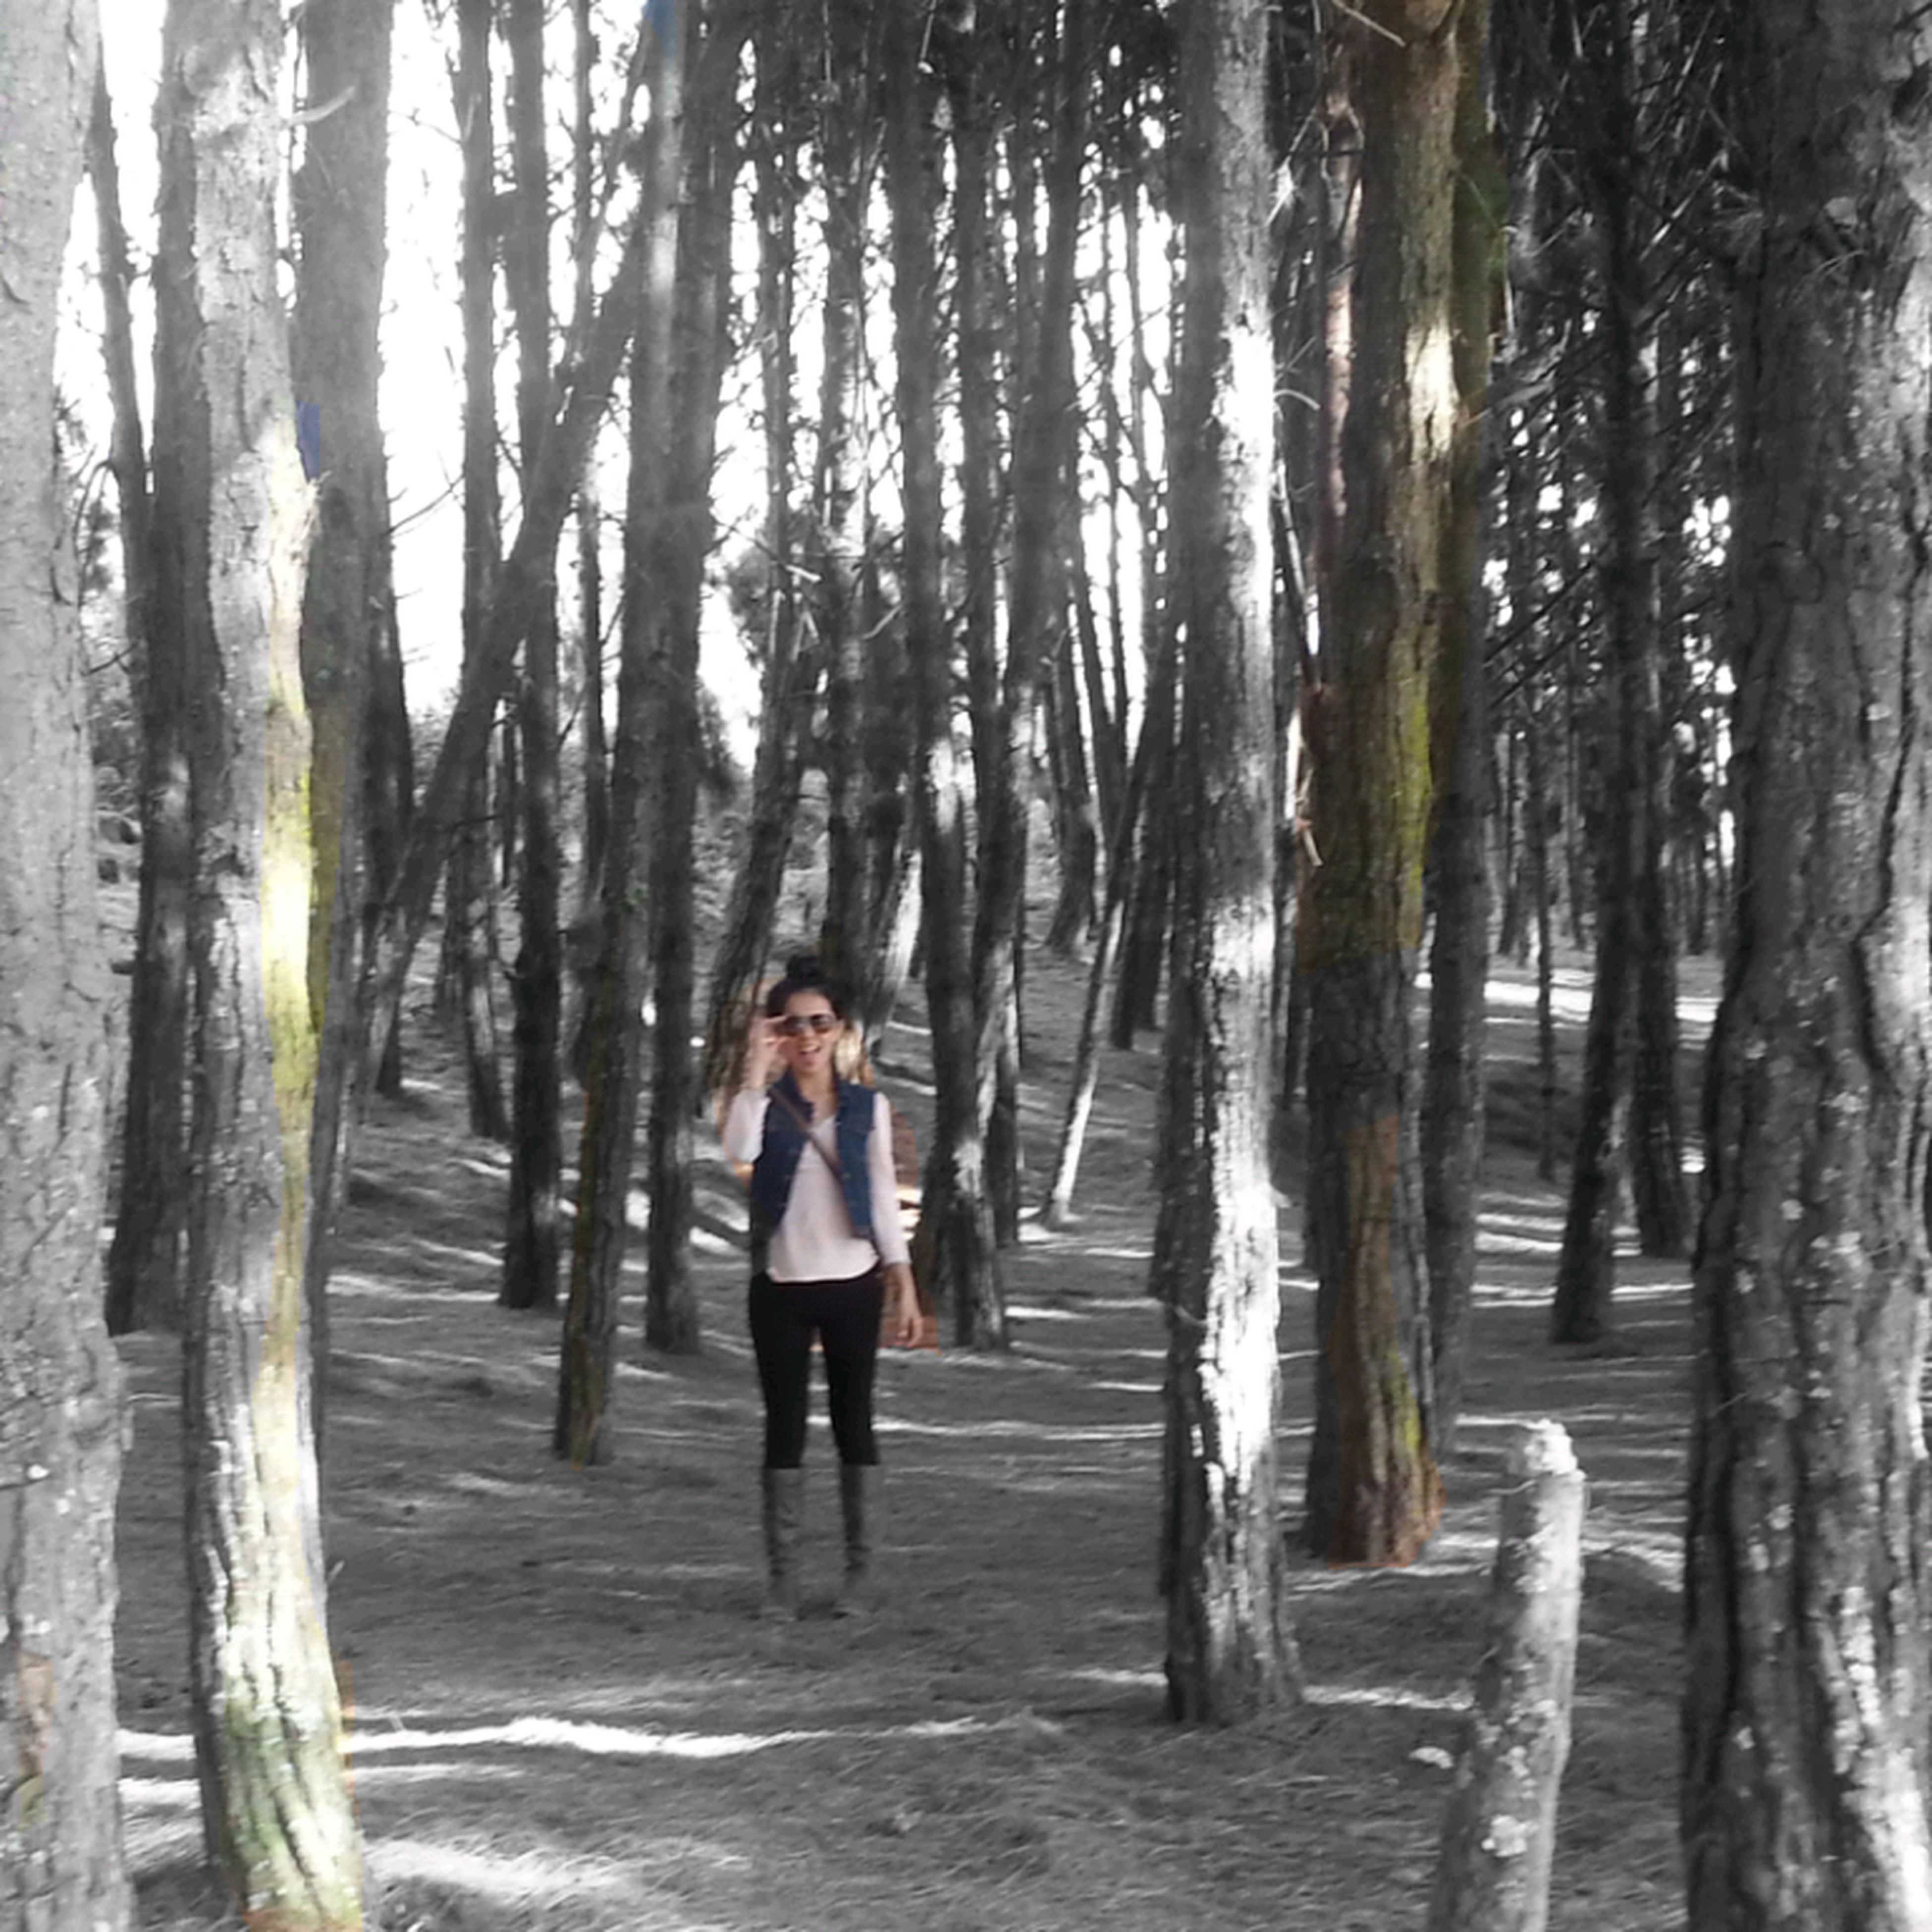 tree, tree trunk, lifestyles, full length, leisure activity, rear view, casual clothing, walking, standing, forest, wood - material, nature, person, outdoors, sunlight, day, men, the way forward